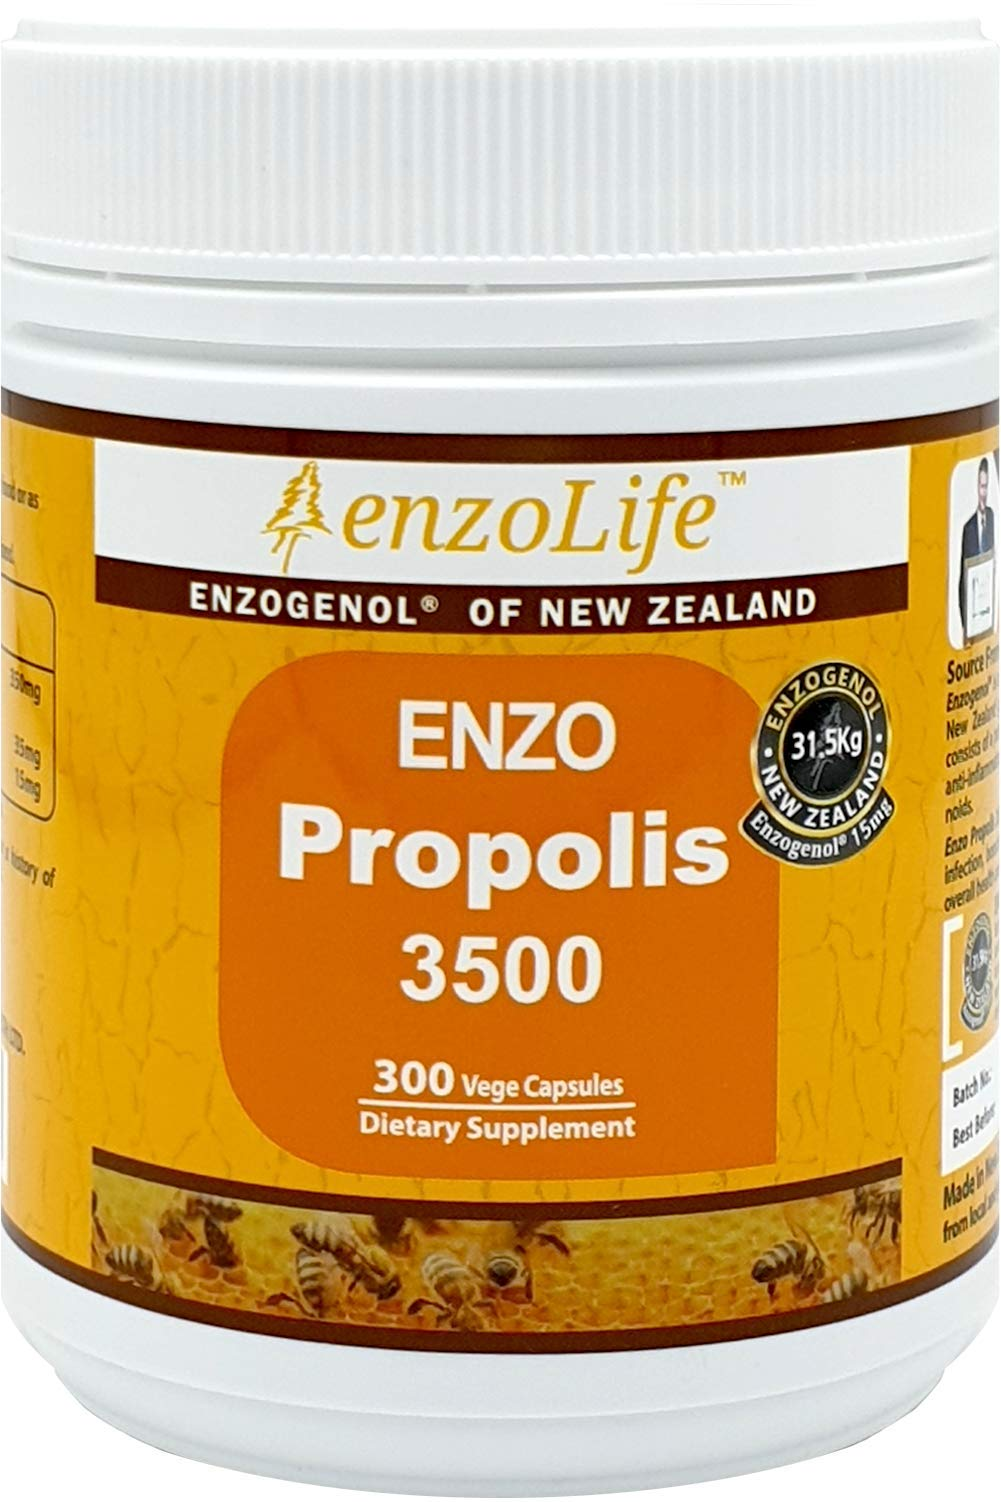 New-Zealand Bee Propolis 3500 300 Capsules Support a Healthy Immune System (1 Bottle)